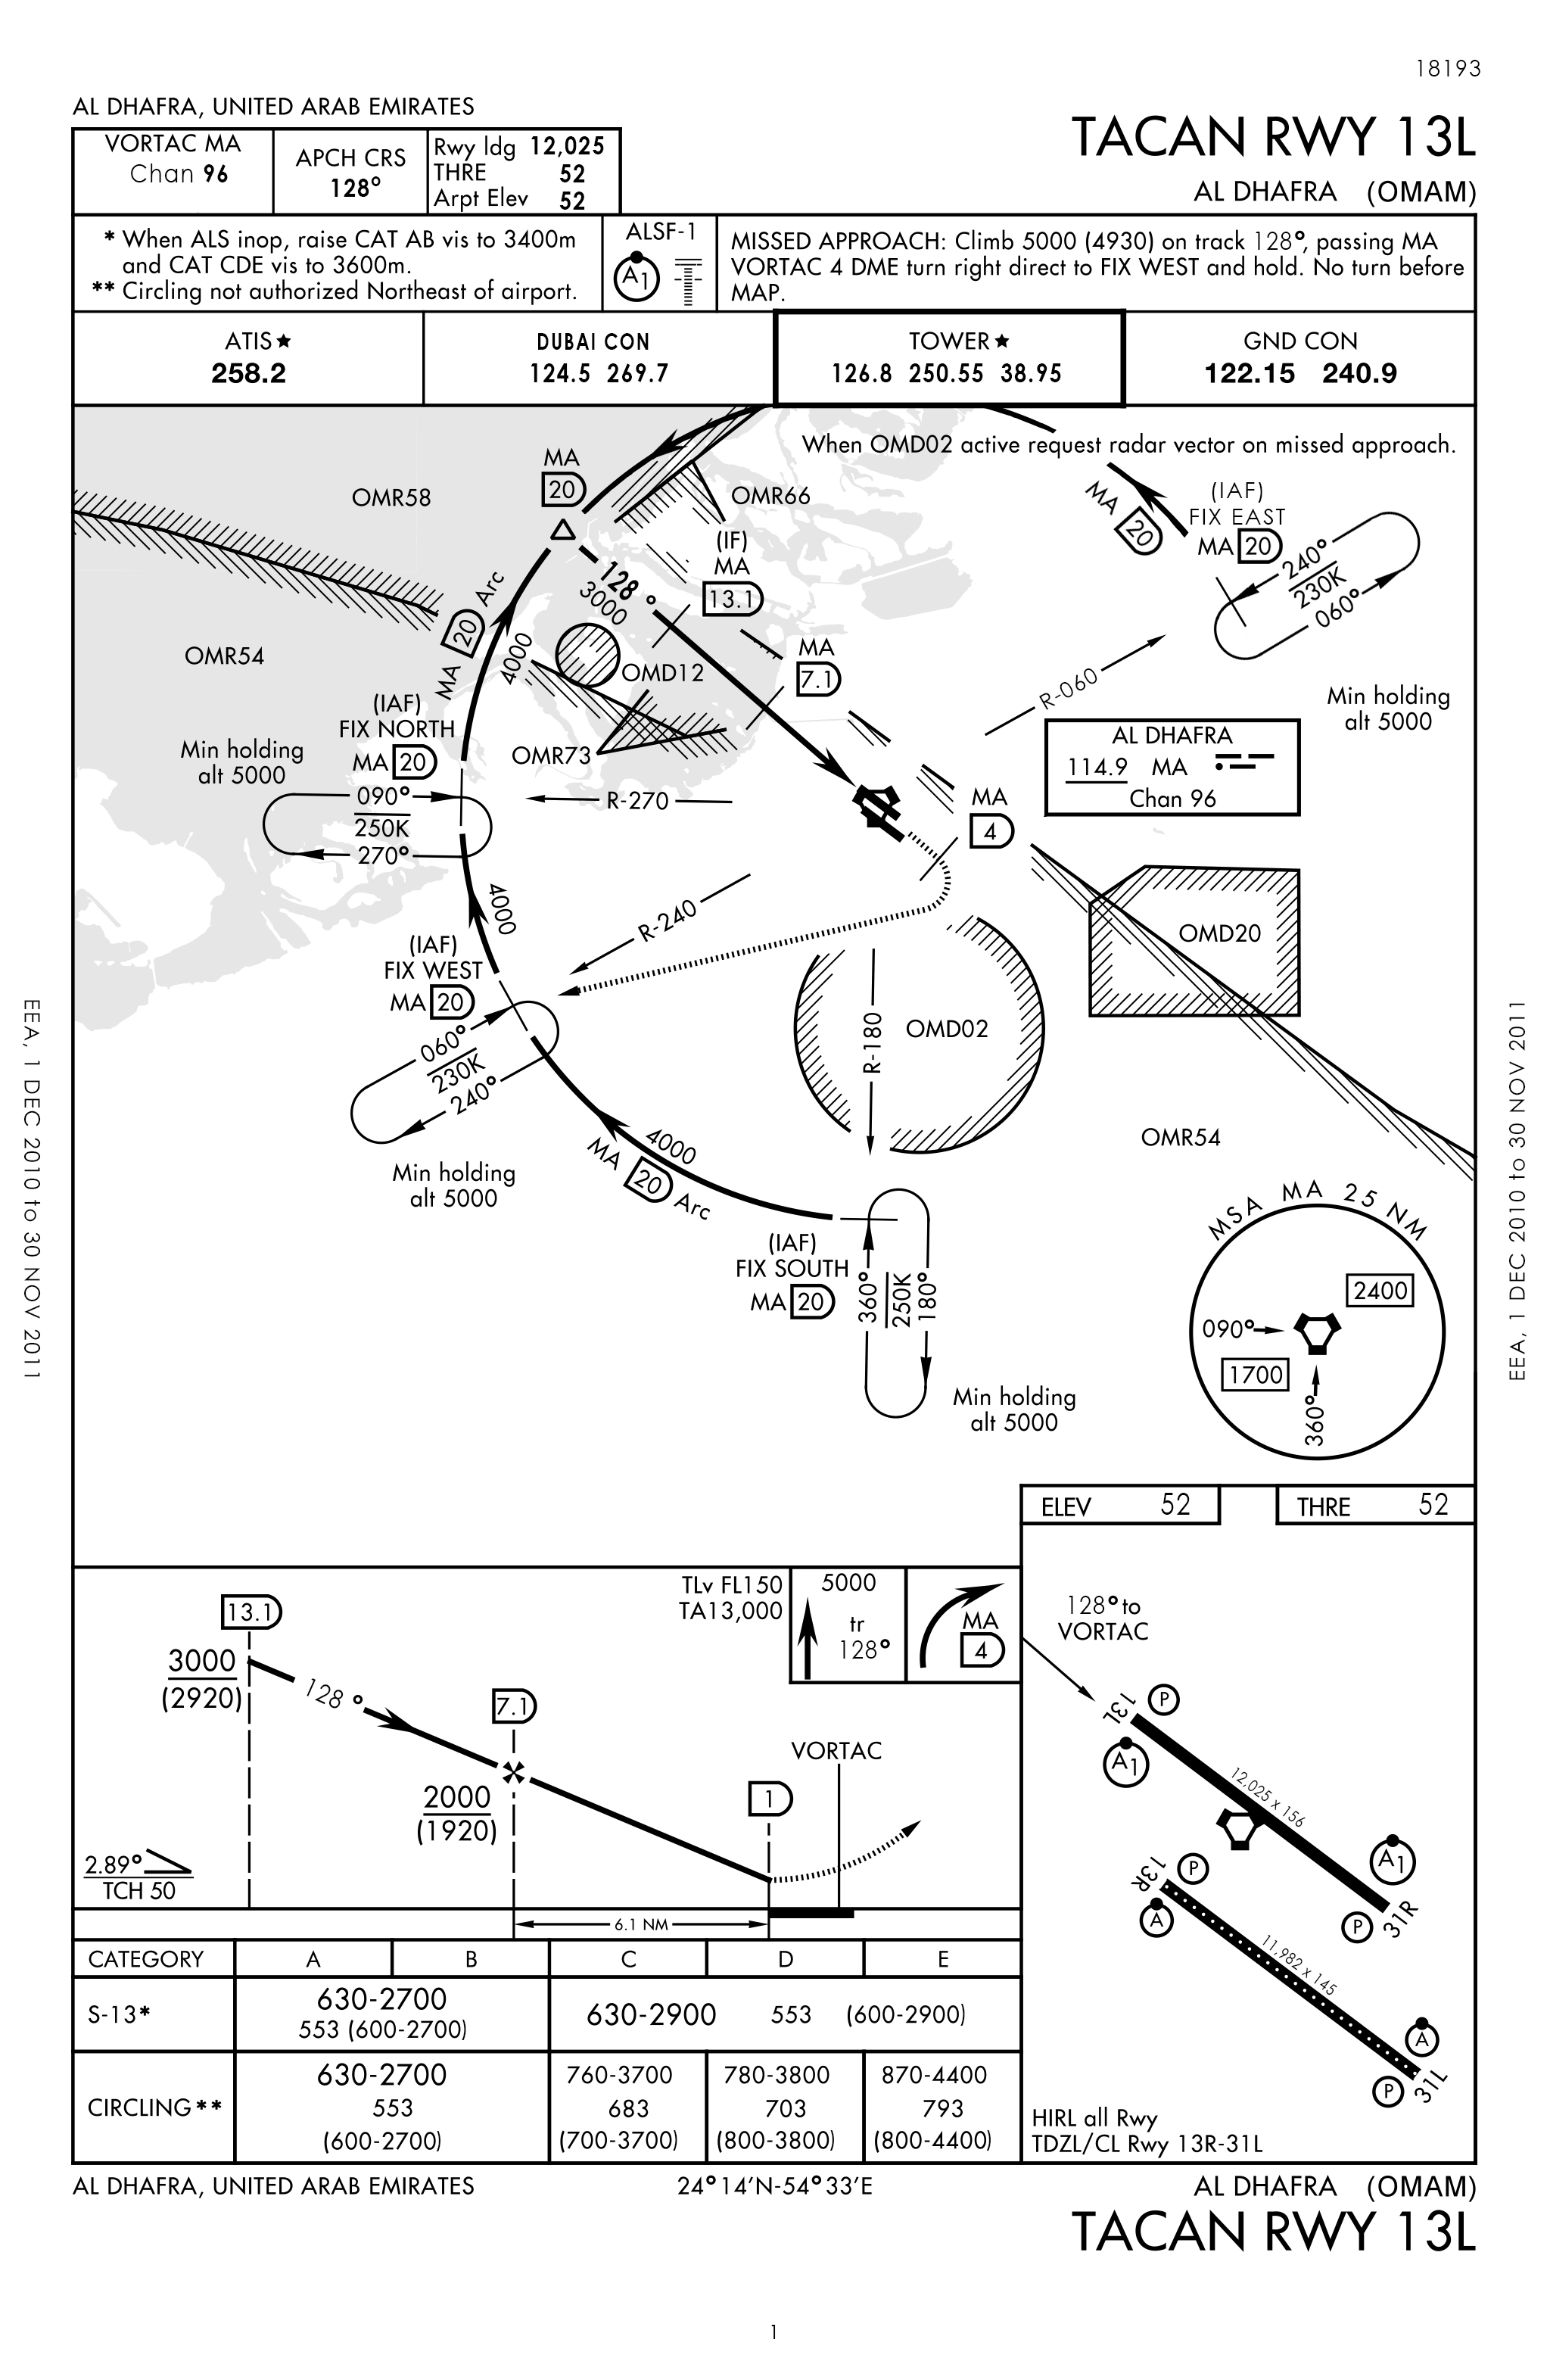 476 vfg flight info pubs - page 3